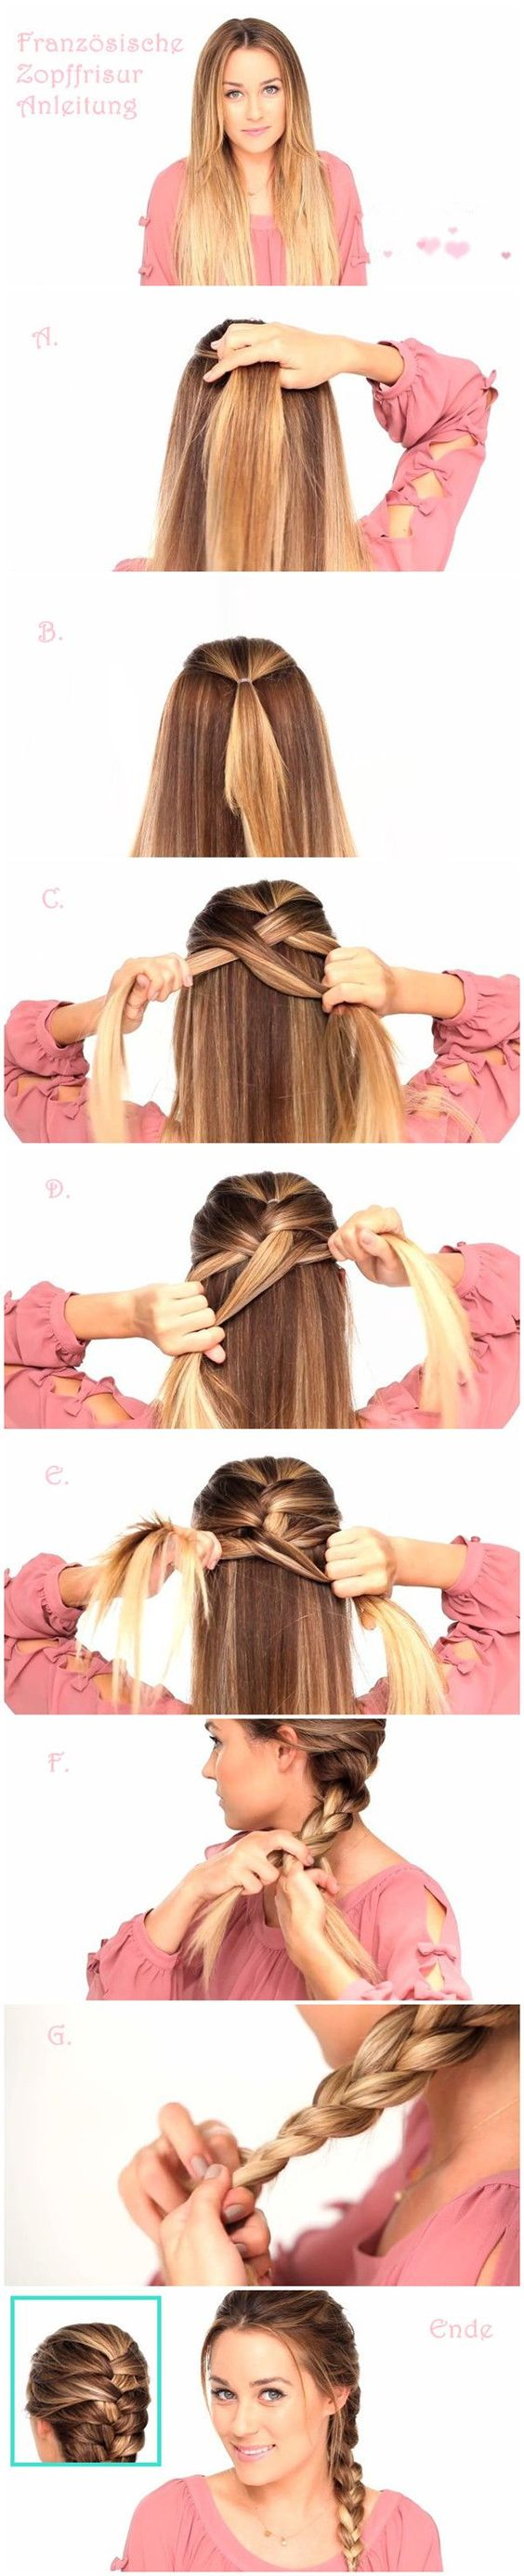 Lauren Conrad teach how to do French braid   hair tutorial.  Possible option for all those male roles I've been playing   ;)